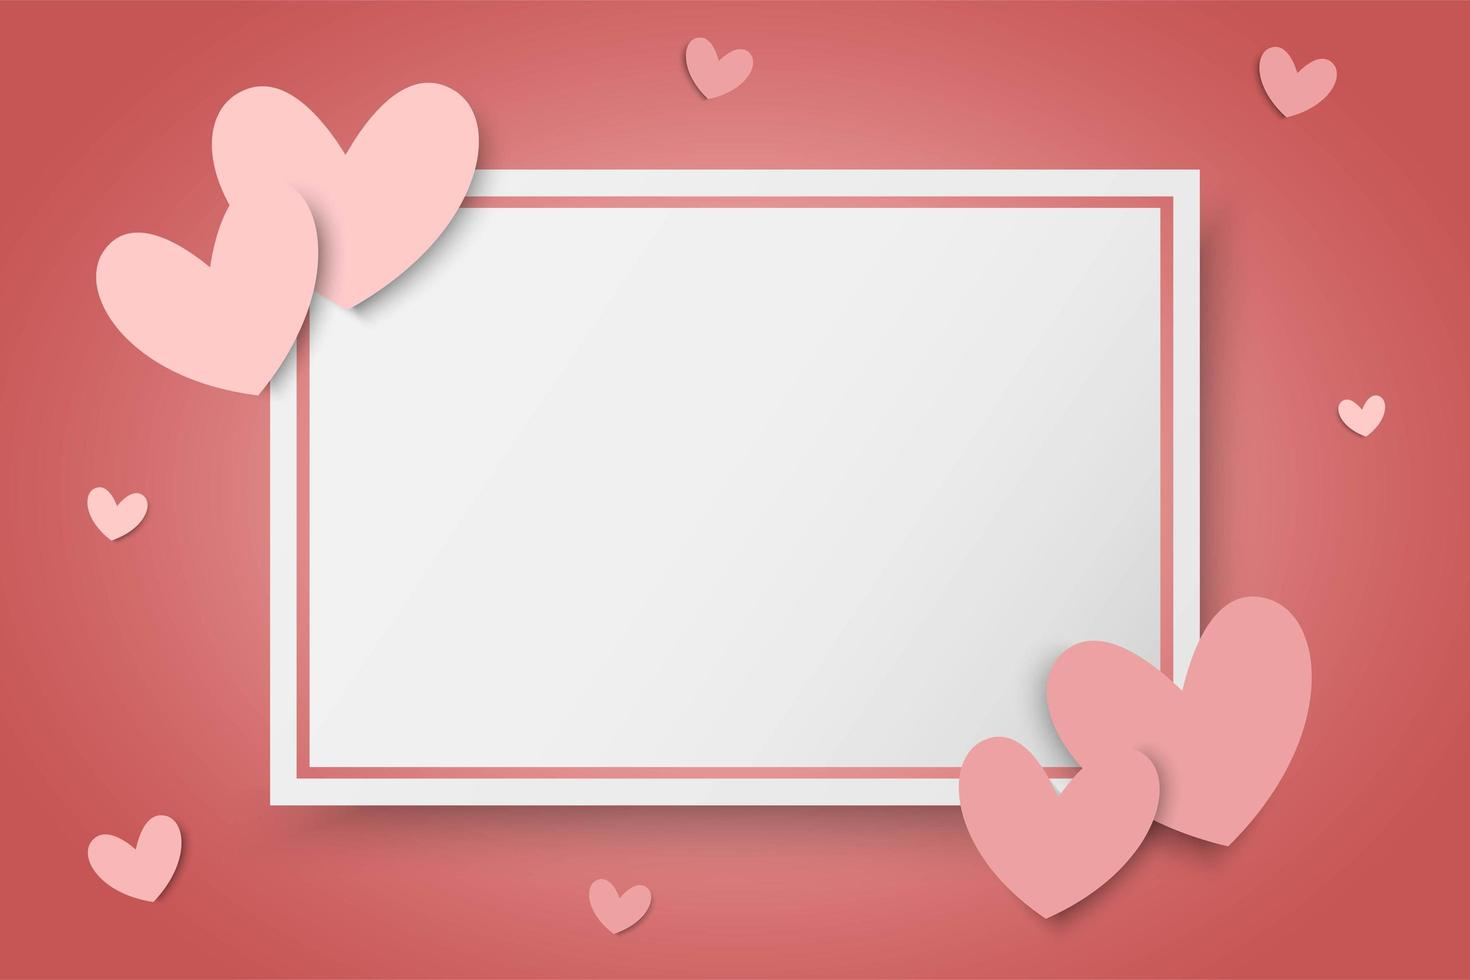 valentines day background with pink hearts and blank white rectangle frame vector